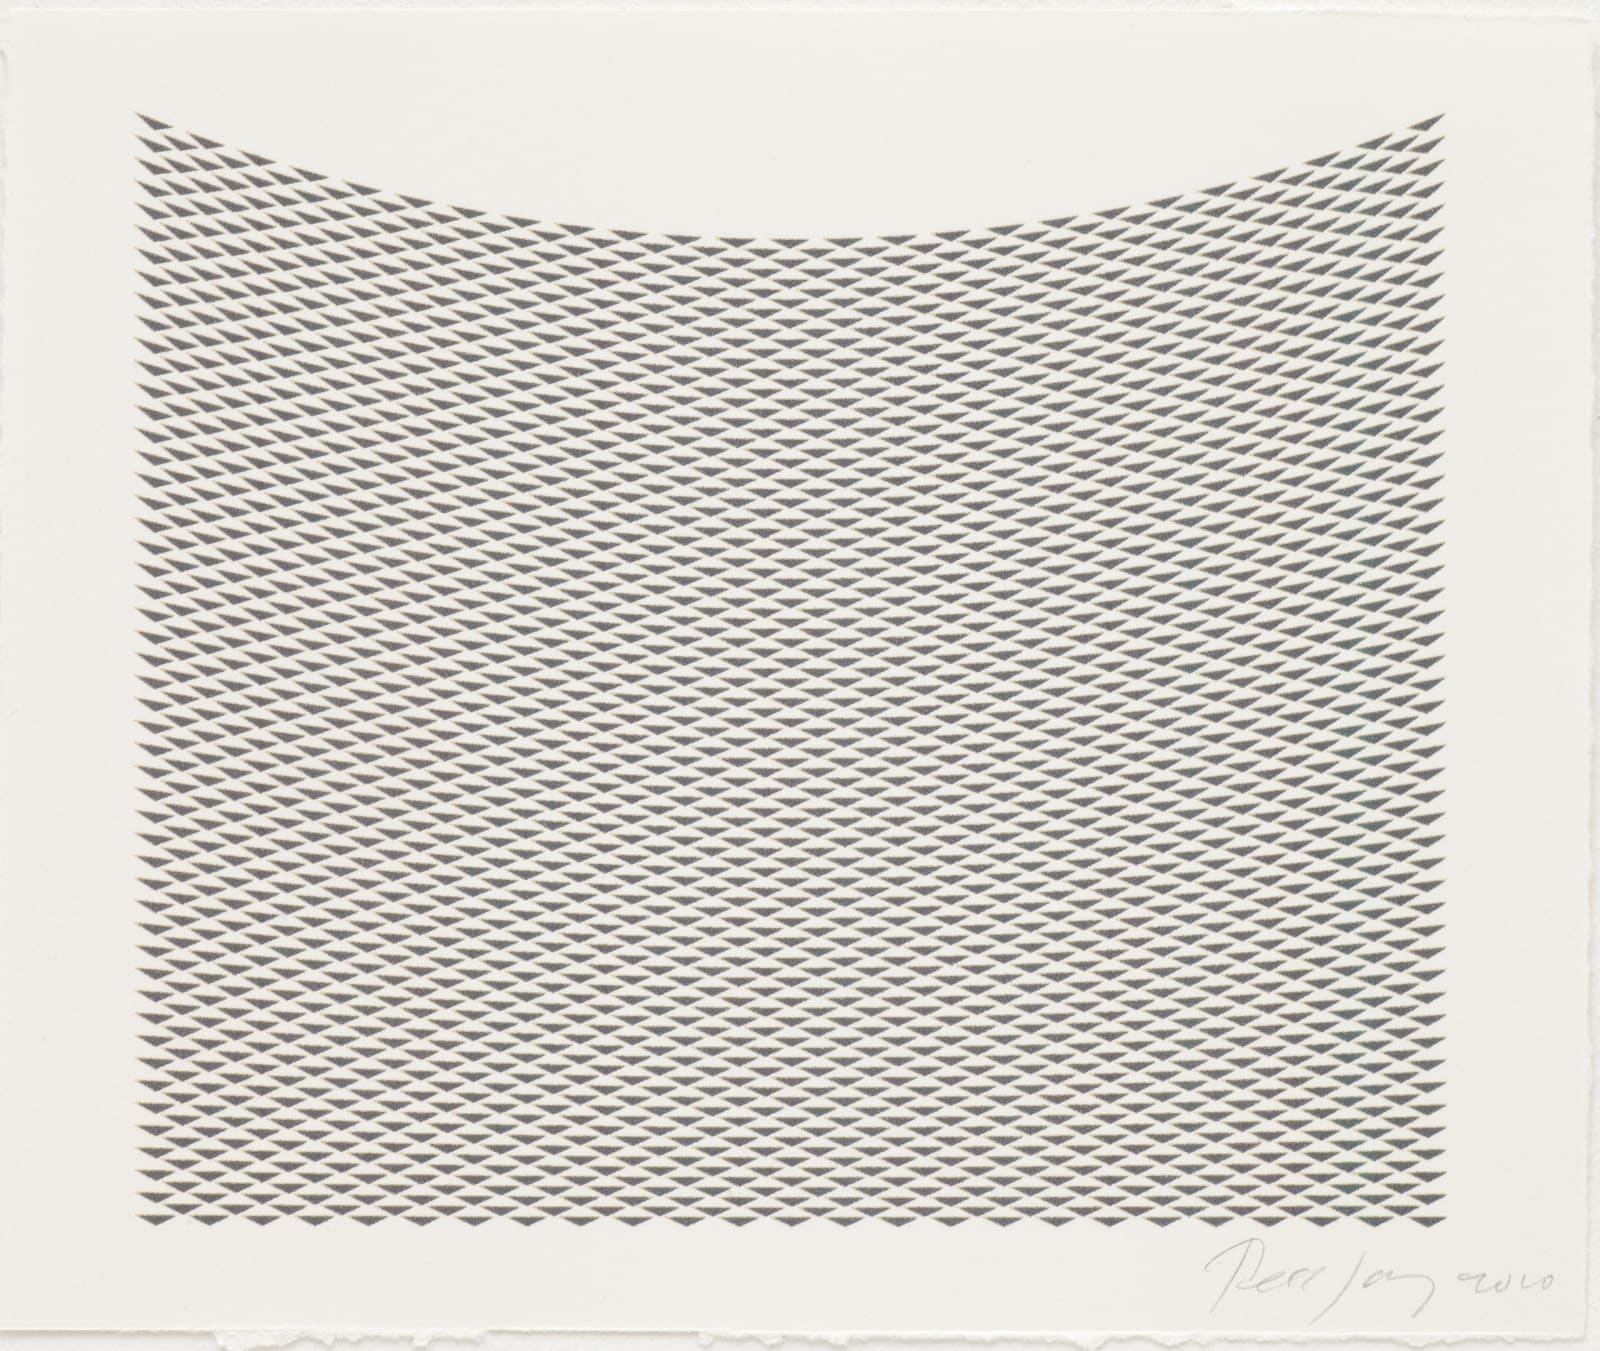 Tess Jaray, Untitled (Grey), 2010